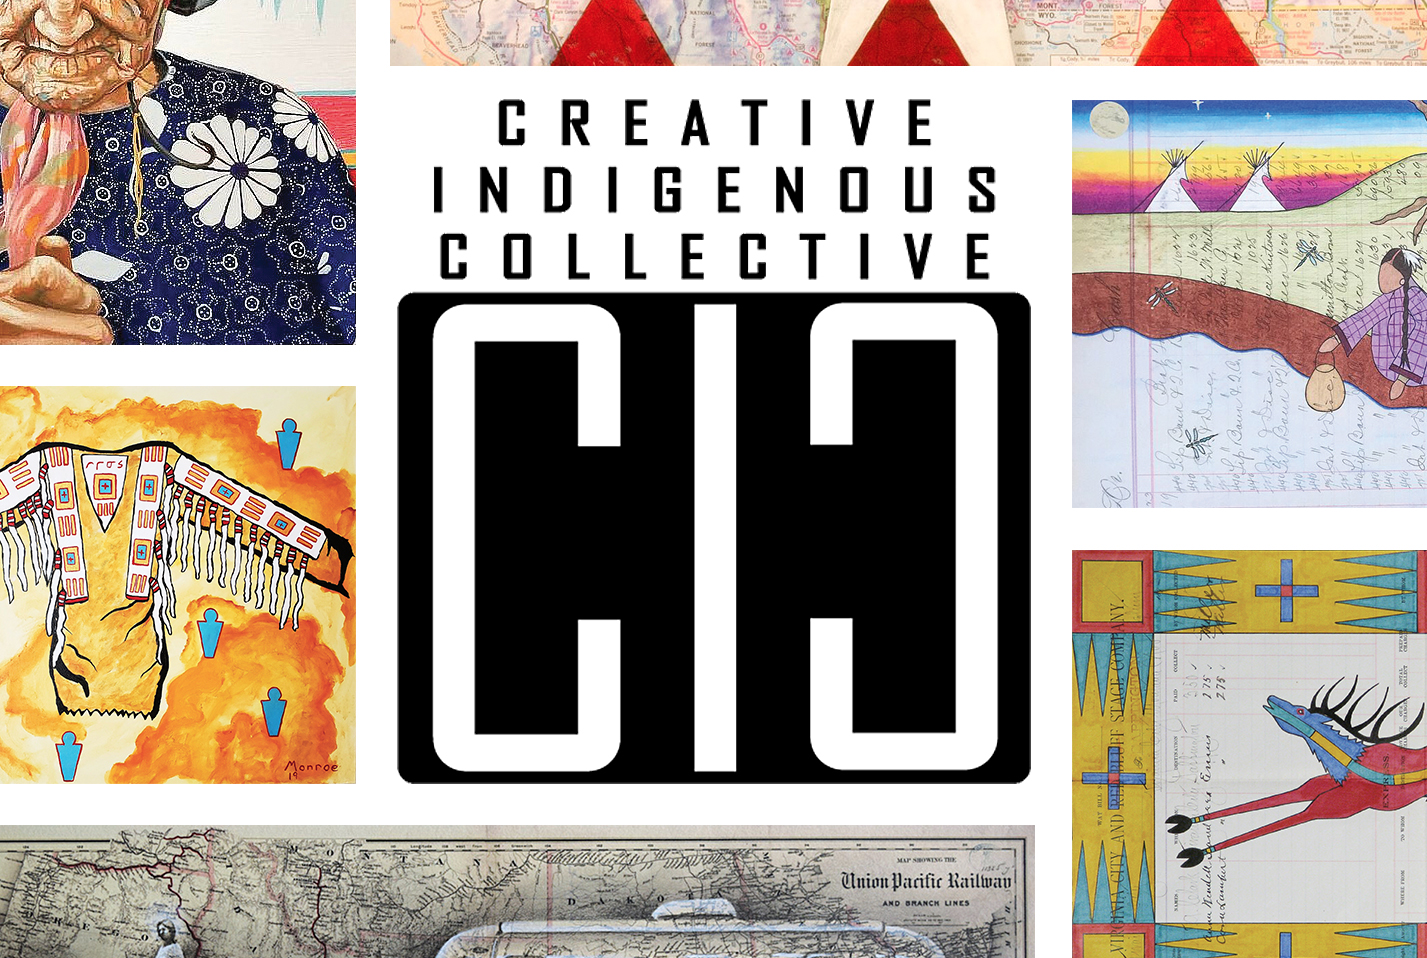 Creative Indigenous Collective